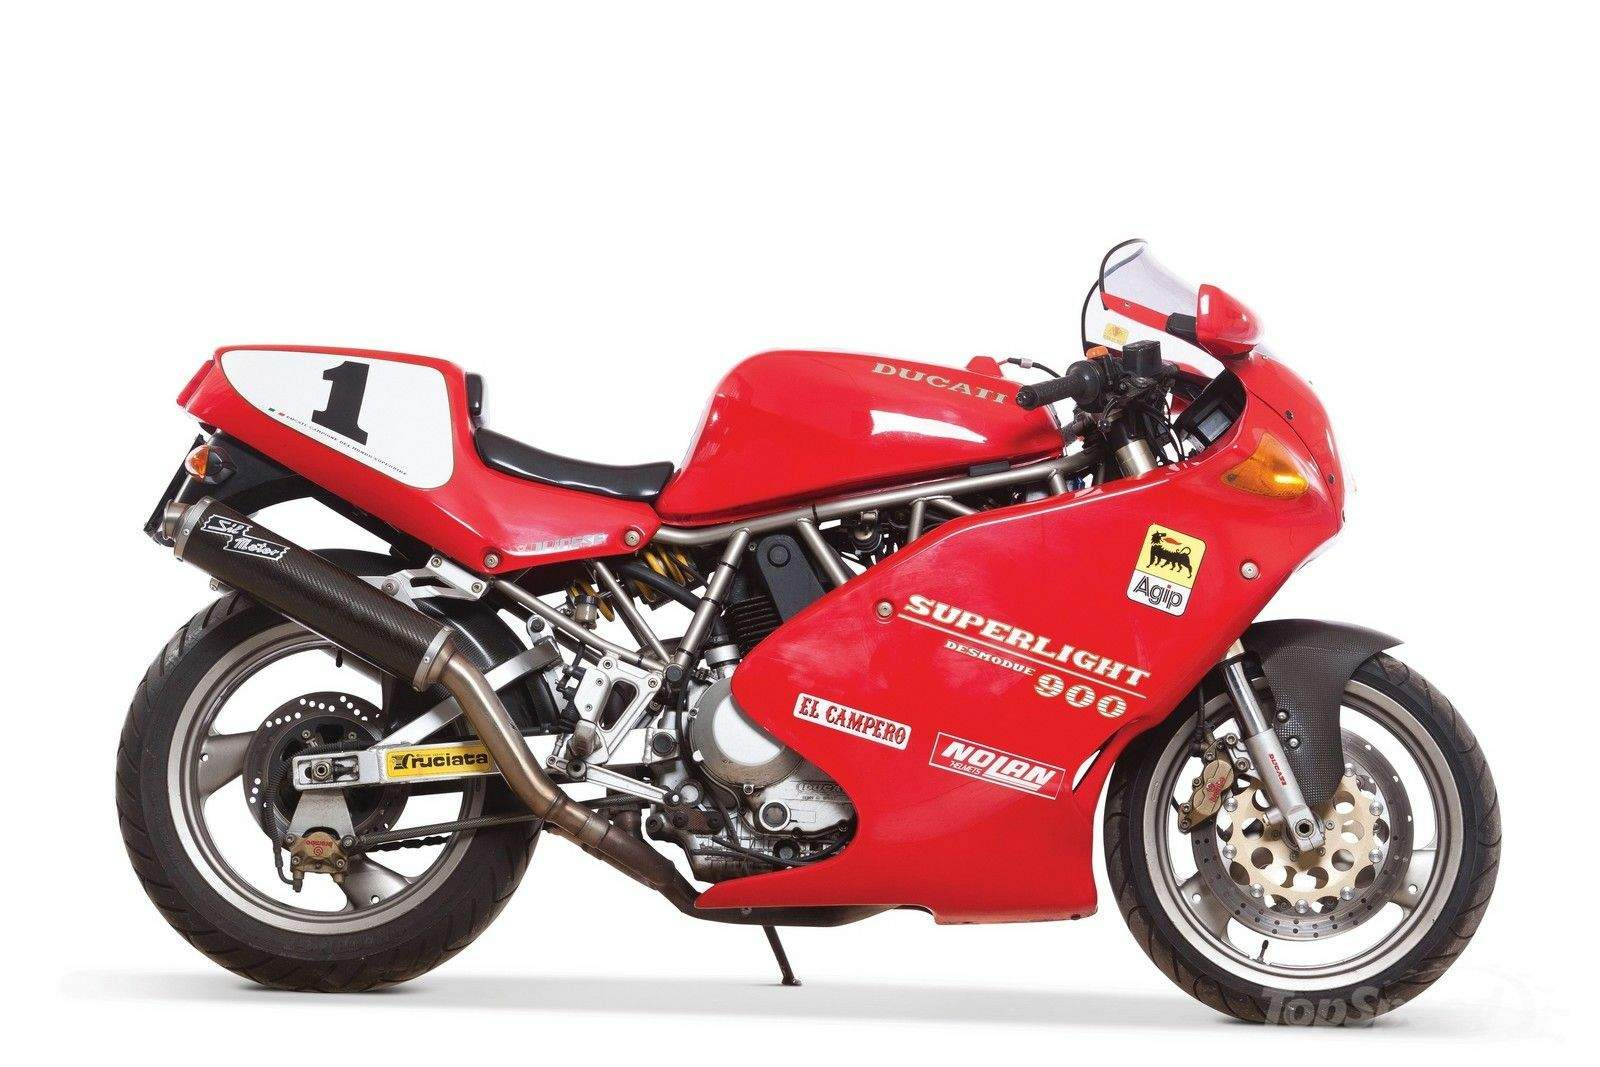 Мотоцикл Ducati 900SL Superlight 1993